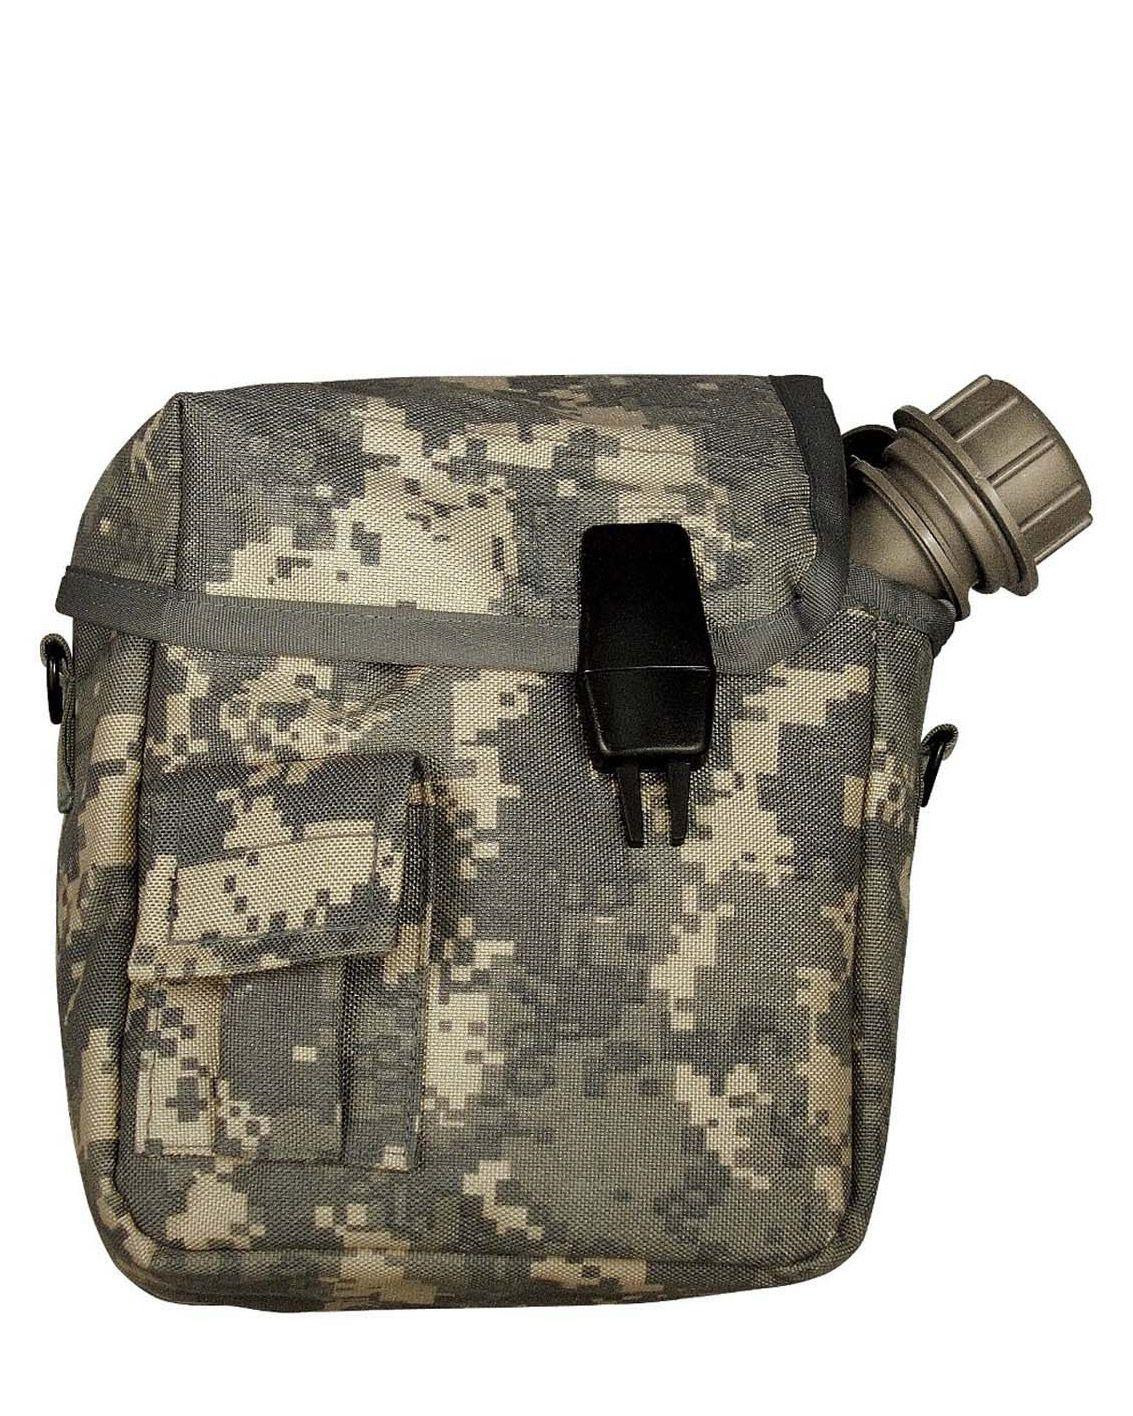 Billede af Rothco MOLLE 2 QT. Bladder Canteen Cover (ACU Camo, One Size)